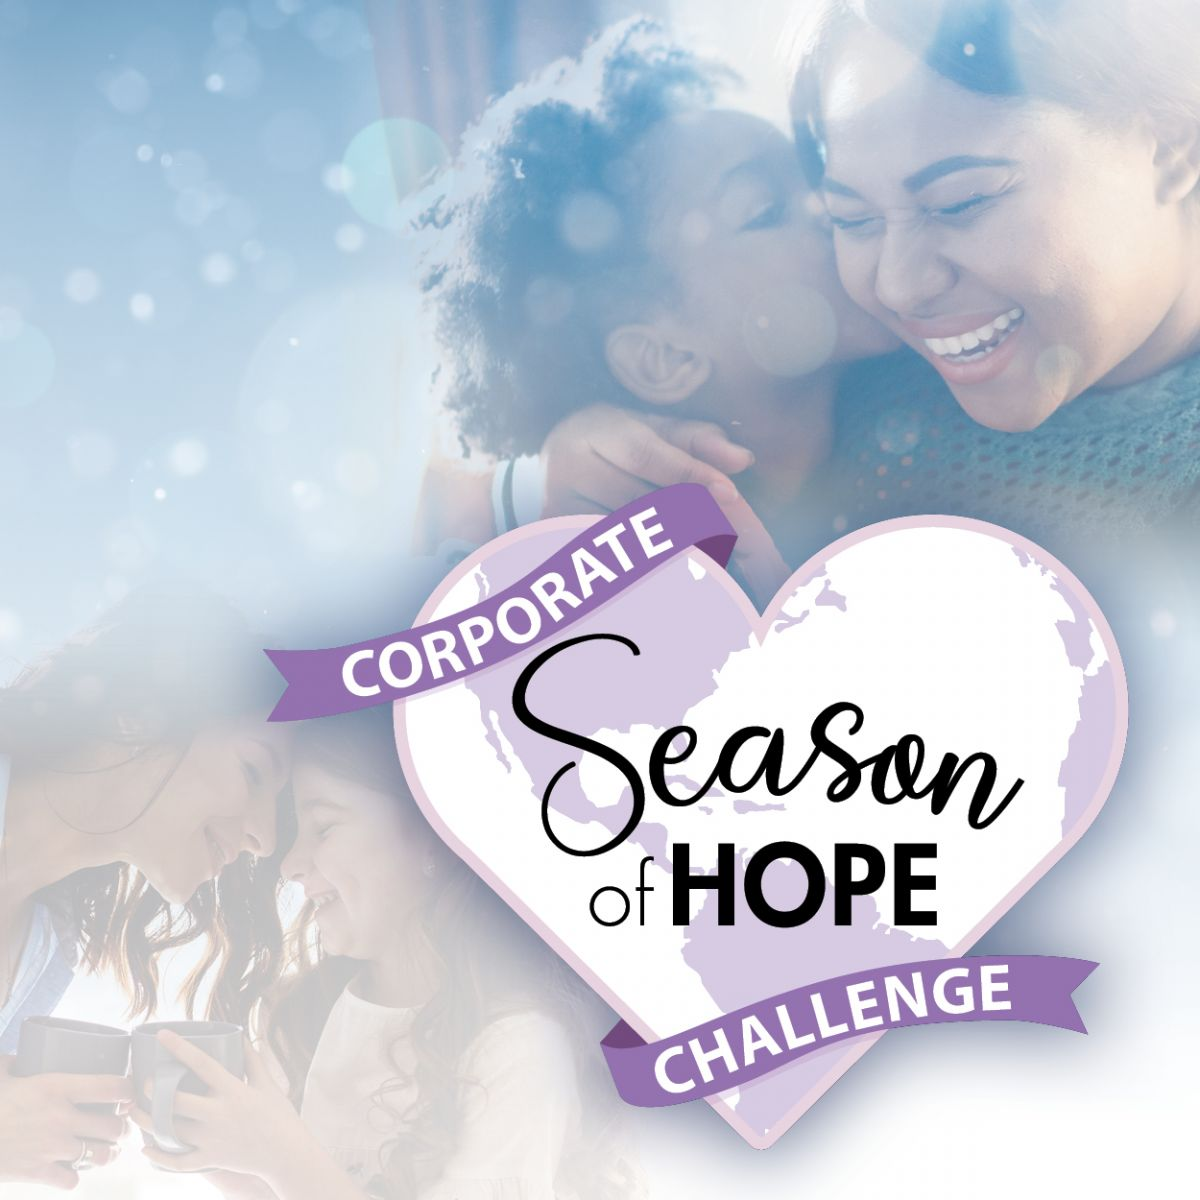 Sign Up for the Season of Hope Corporate Challenge